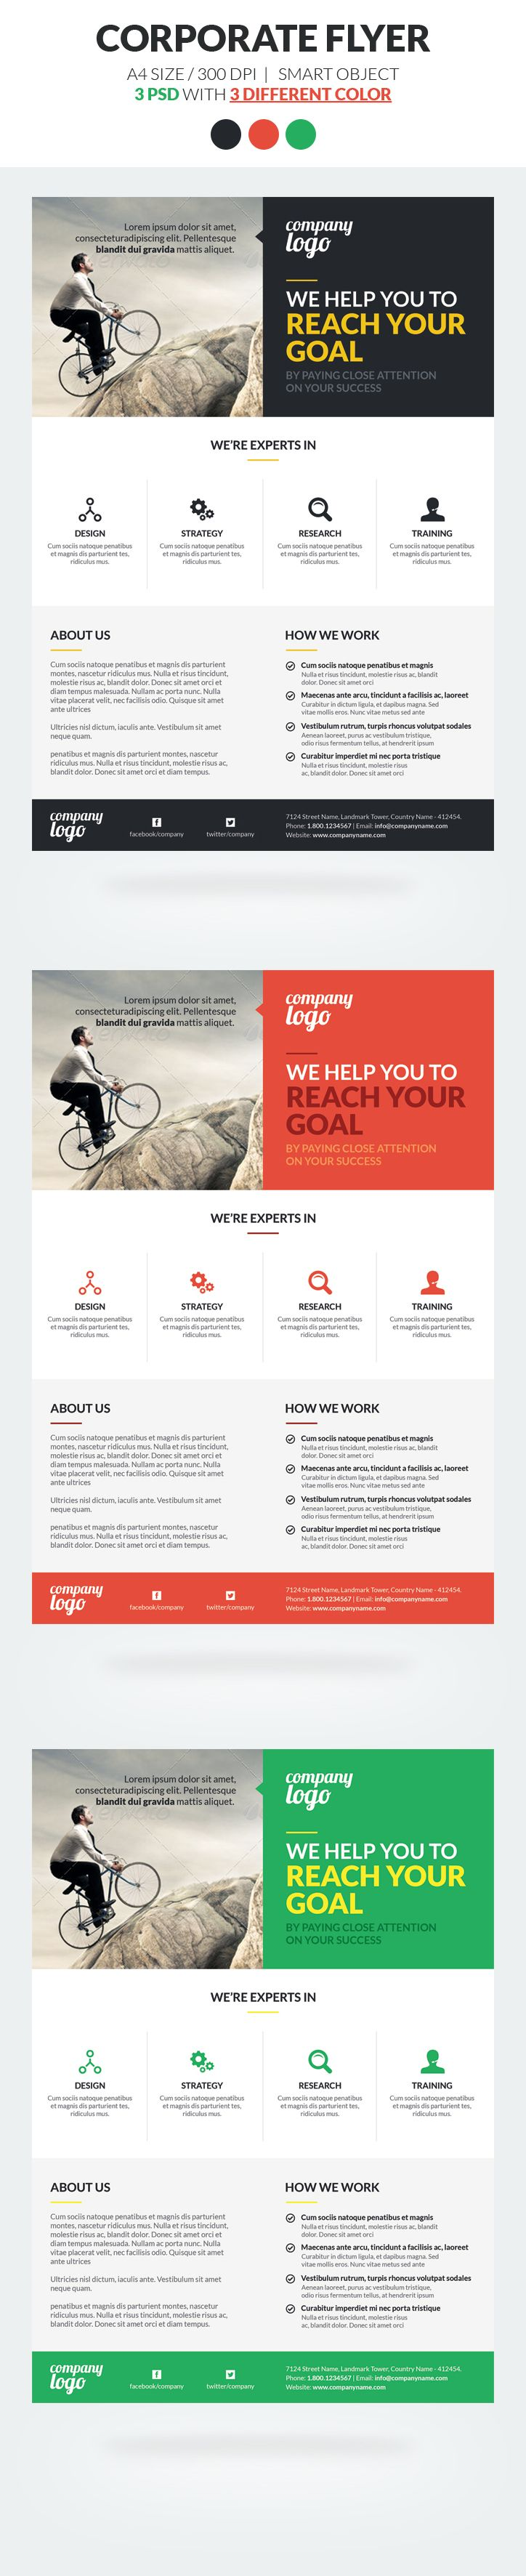 Corporate Flyer Template Vol 2 is fully layred and very easy to edit template. Included 3 different color options.